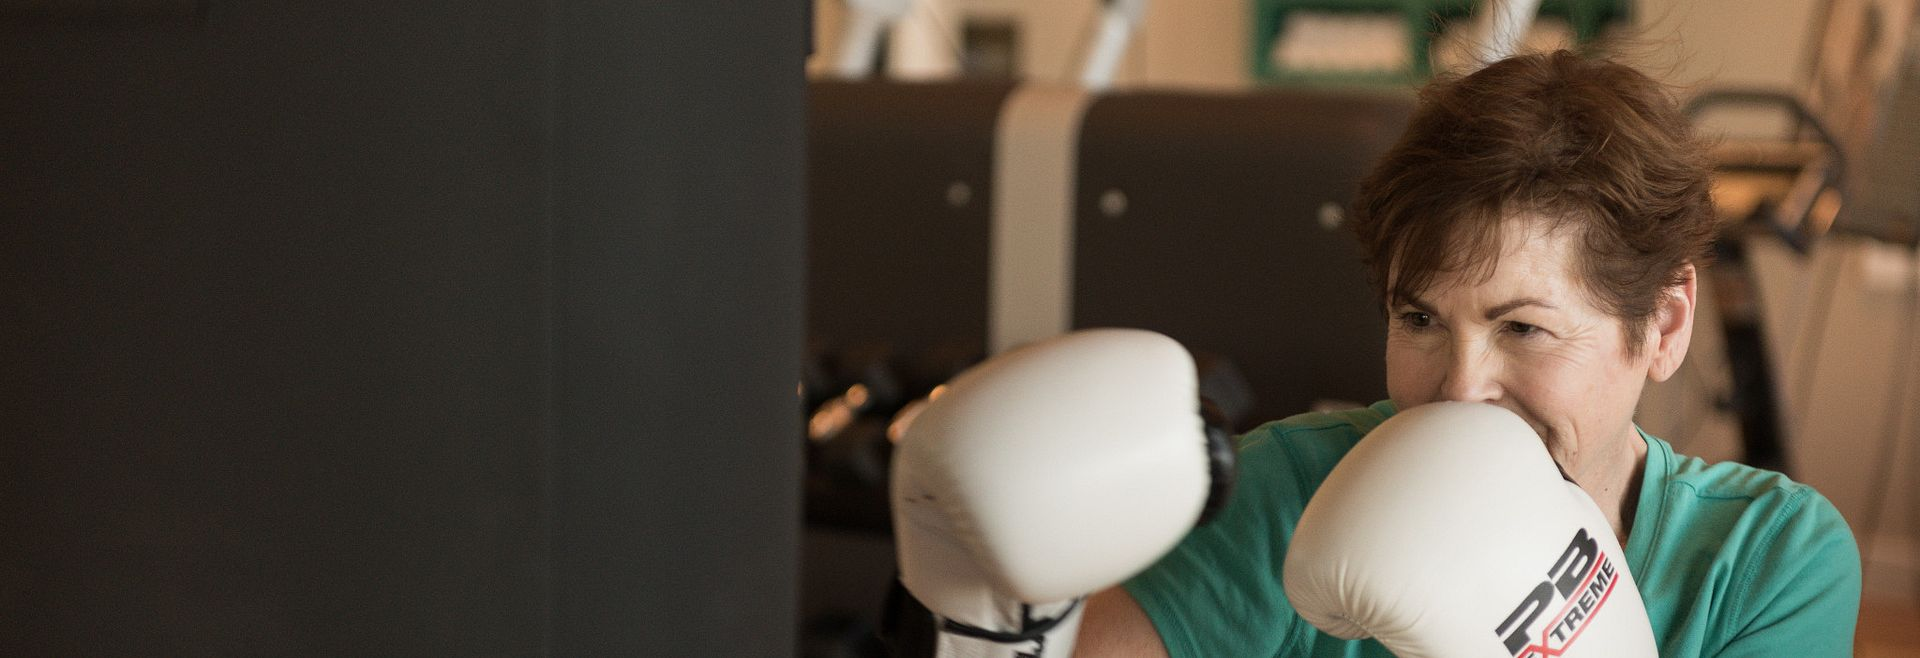 Woman wearing boxing gloves with punching bag